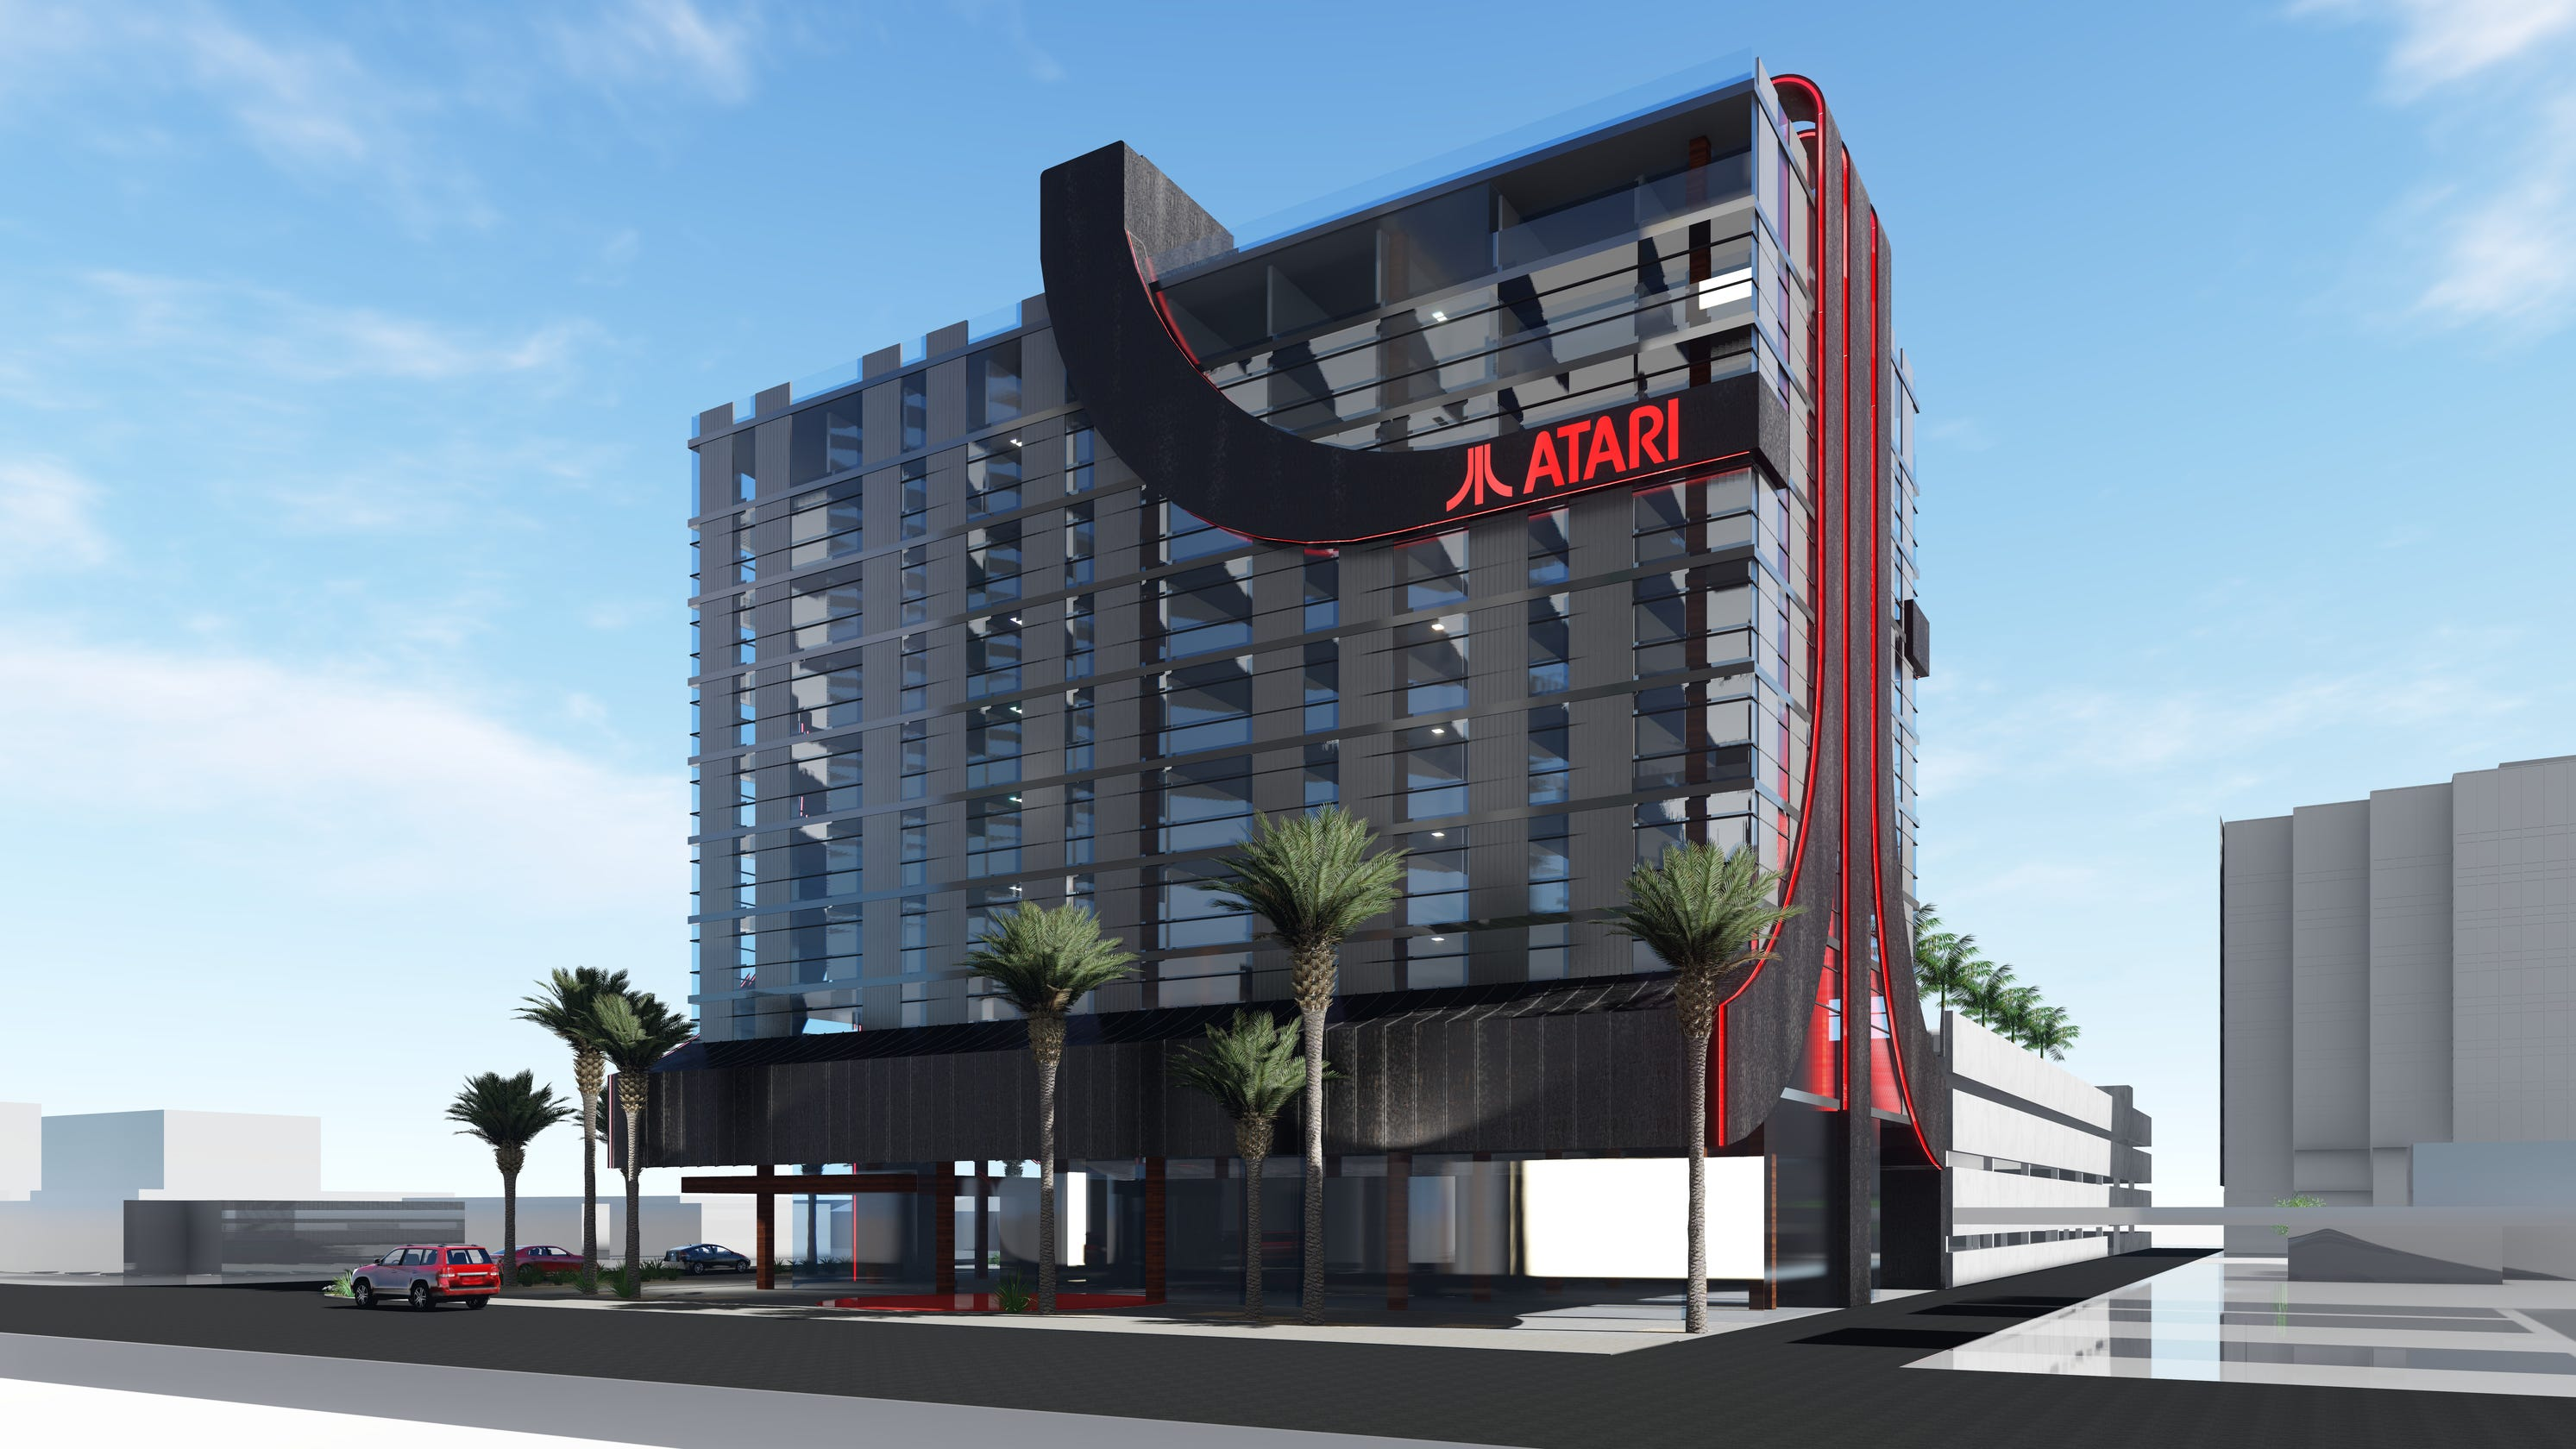 Atari hotel, Wienermobile warning, goat mayor's K-9 rival: News from around our 50 states